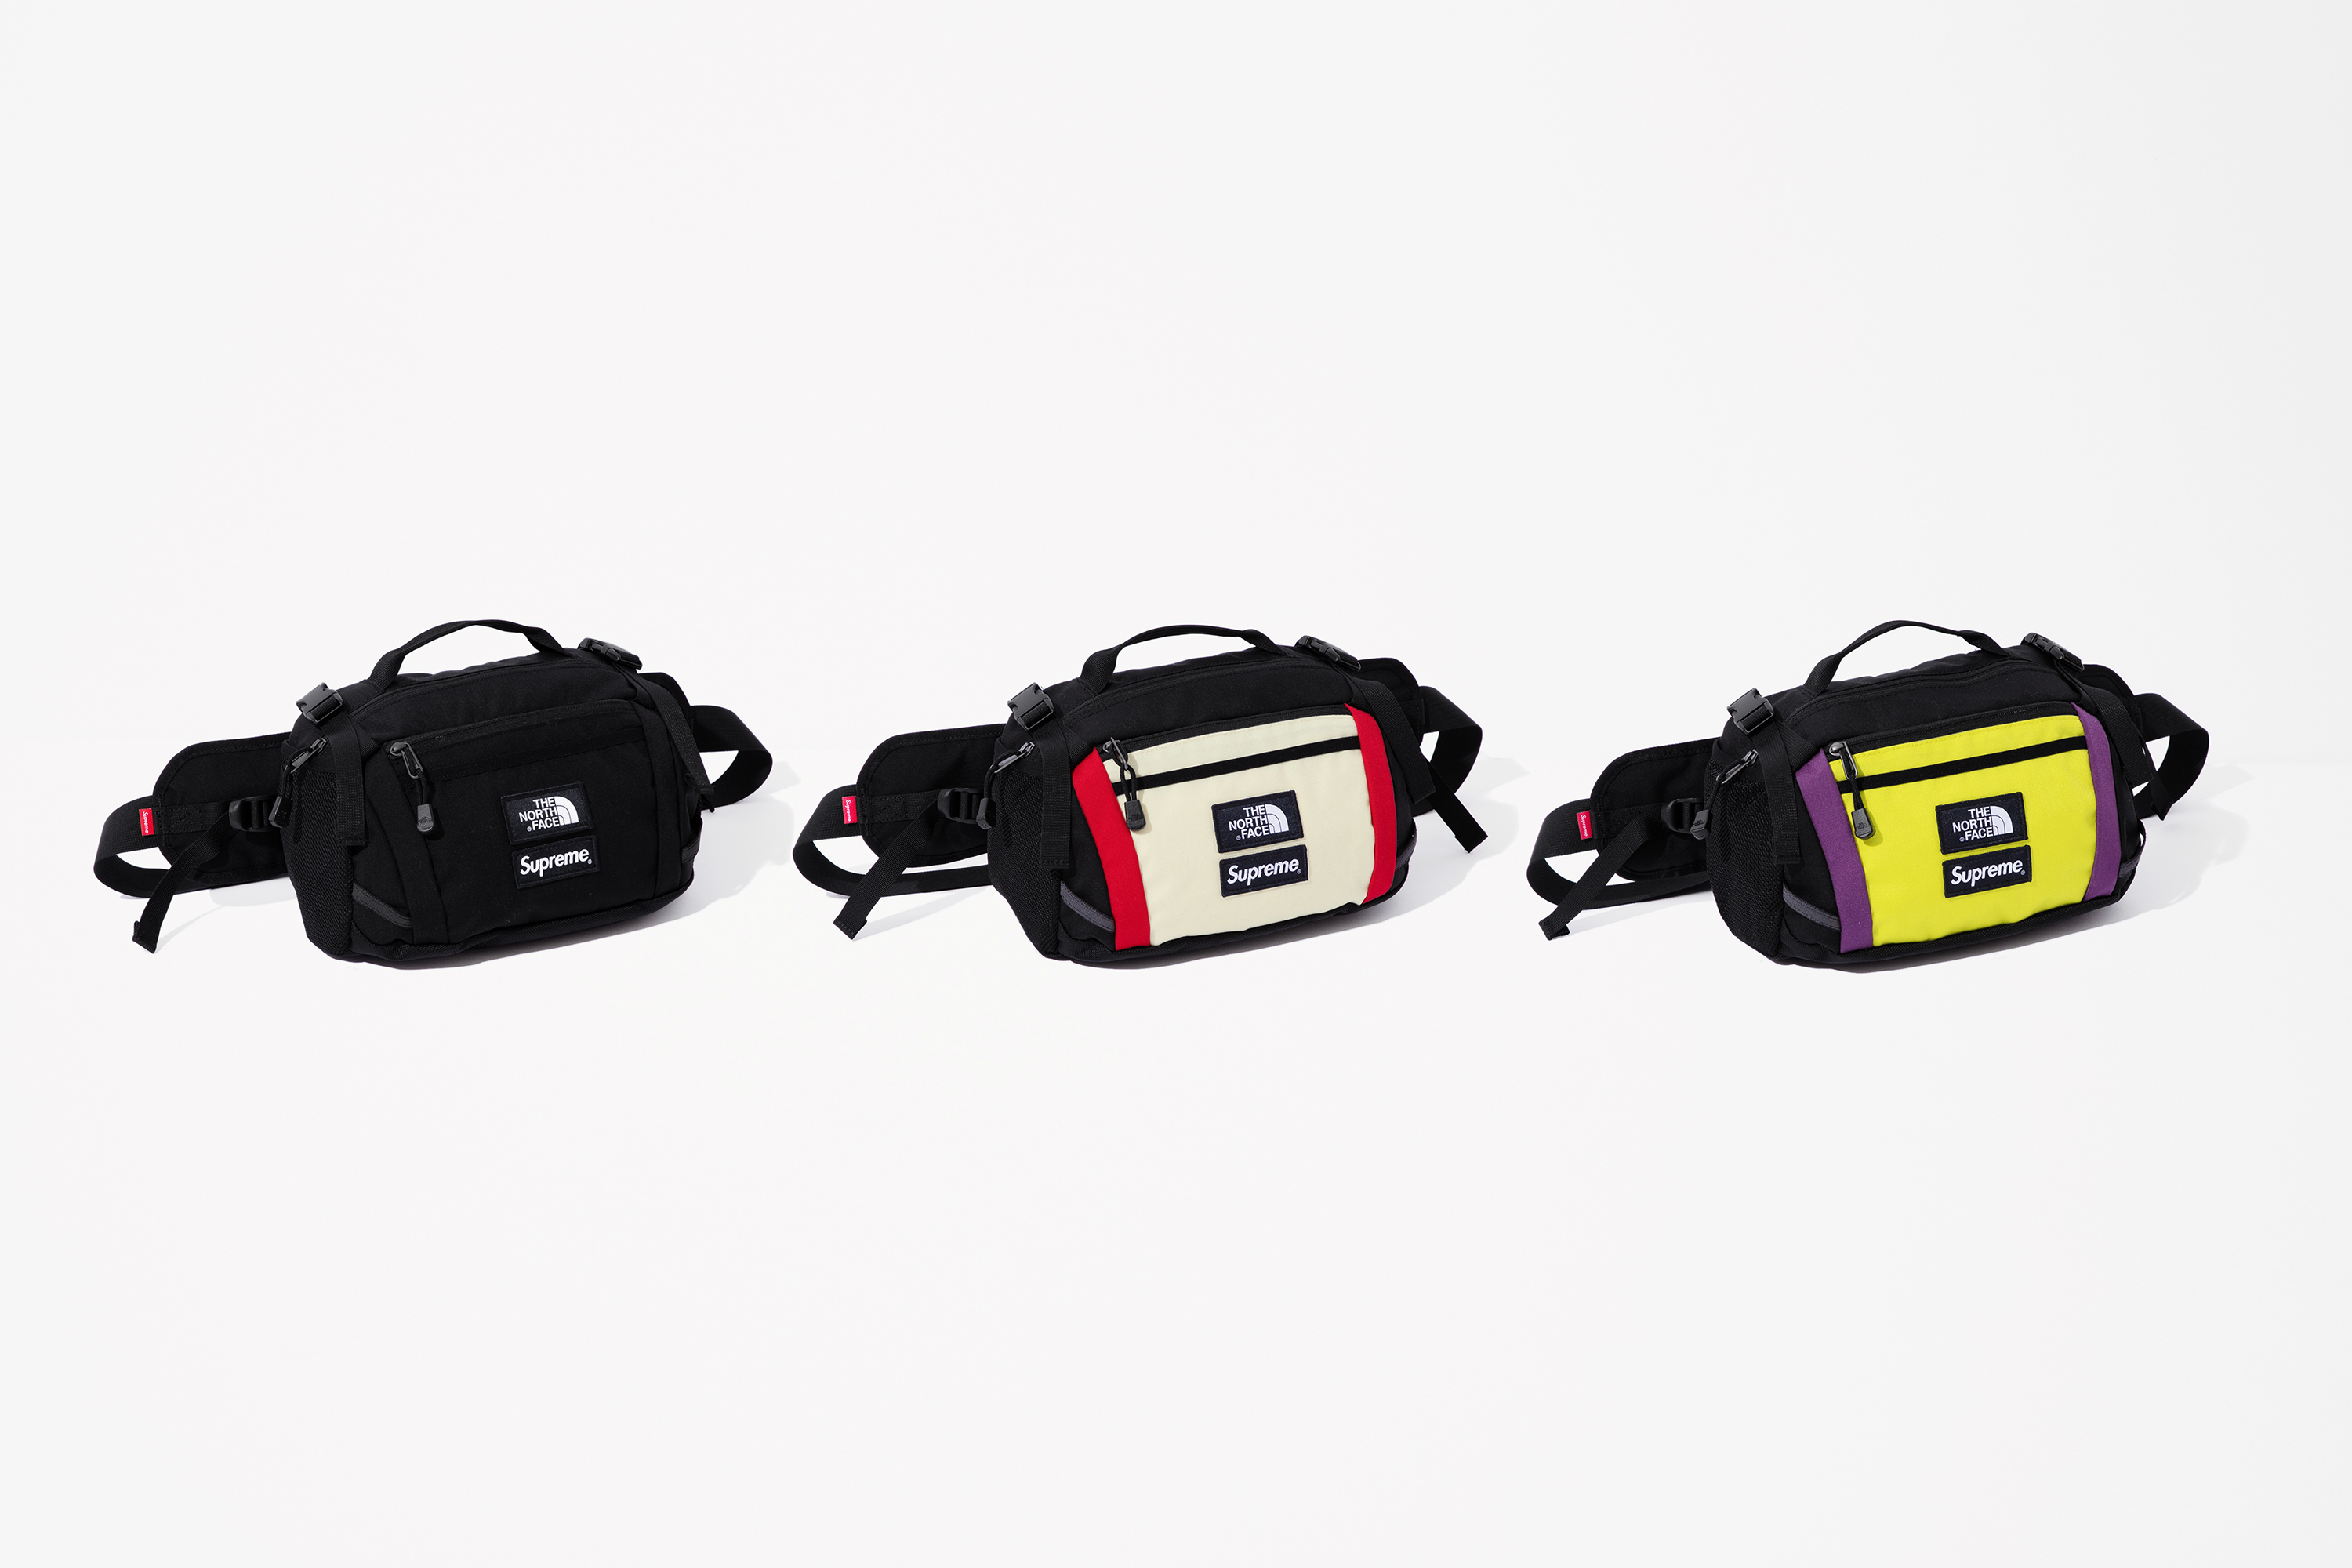 supreme-the-north-face-2018aw-2nd-delivery-release-20181201-week15-expedition-waist-bag